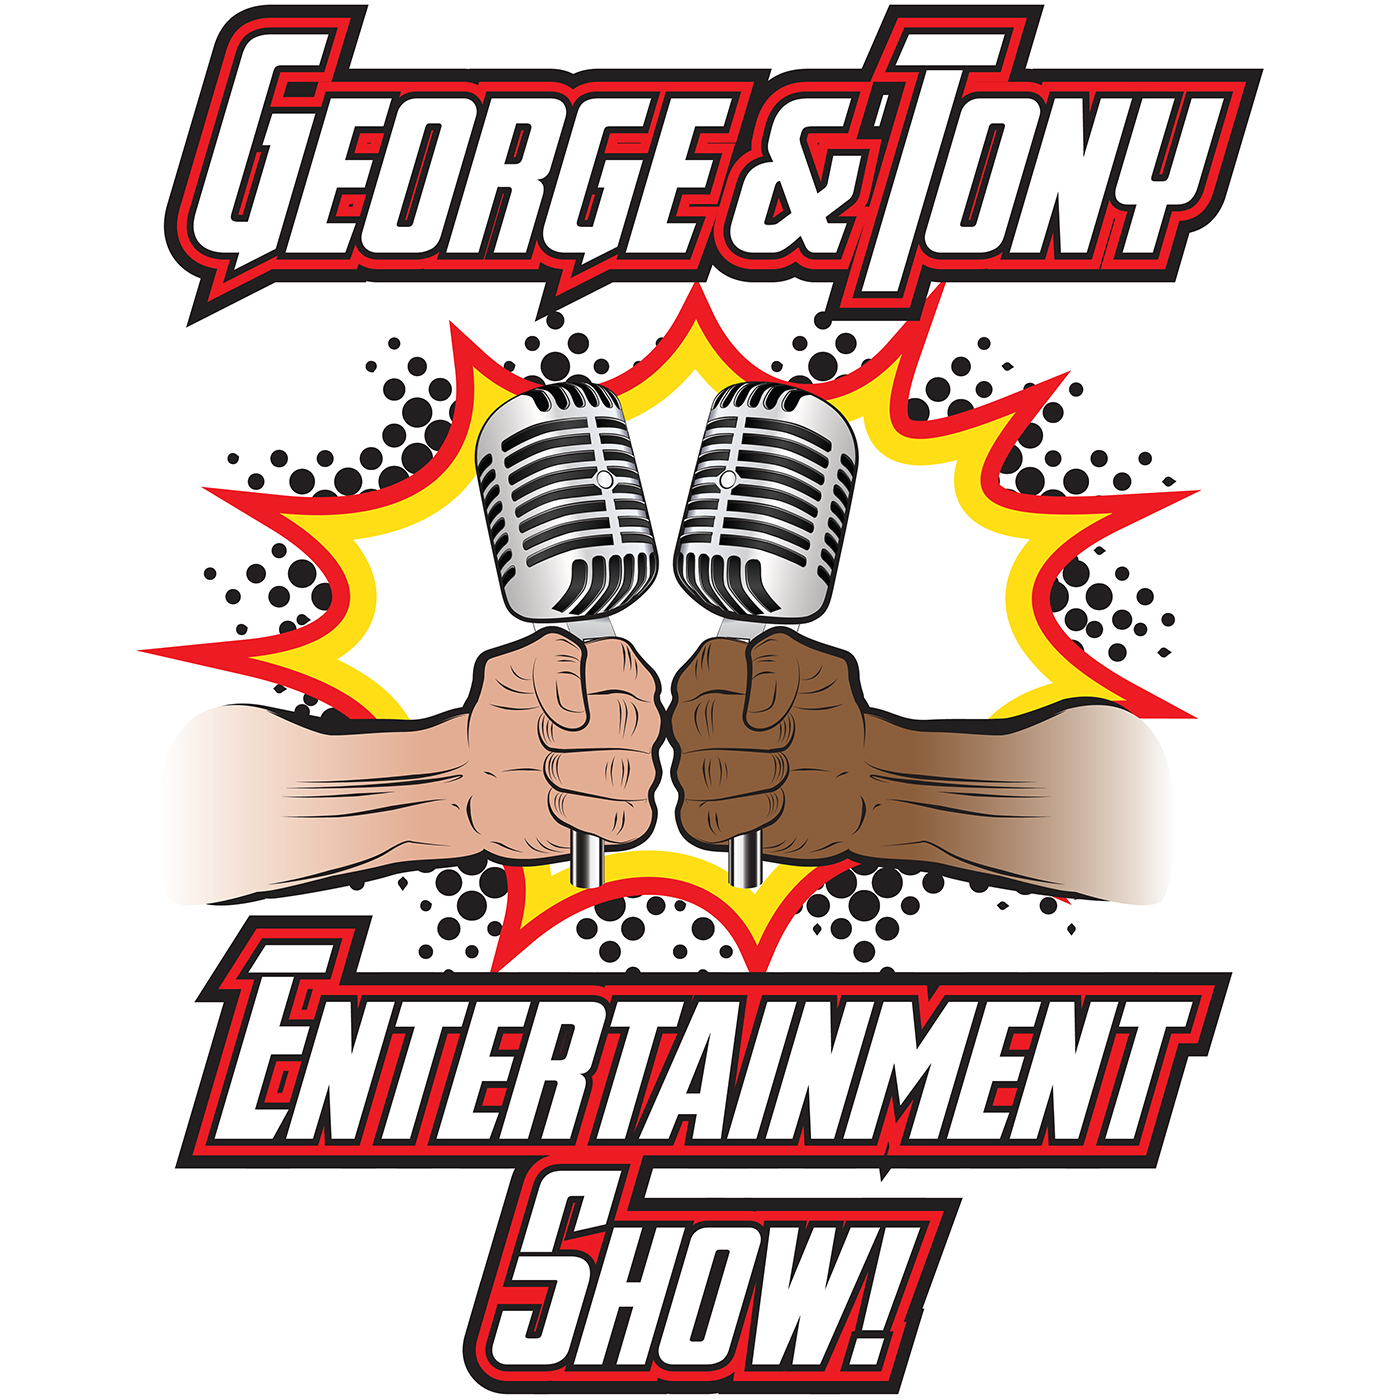 George and Tony Entertainment Show #17